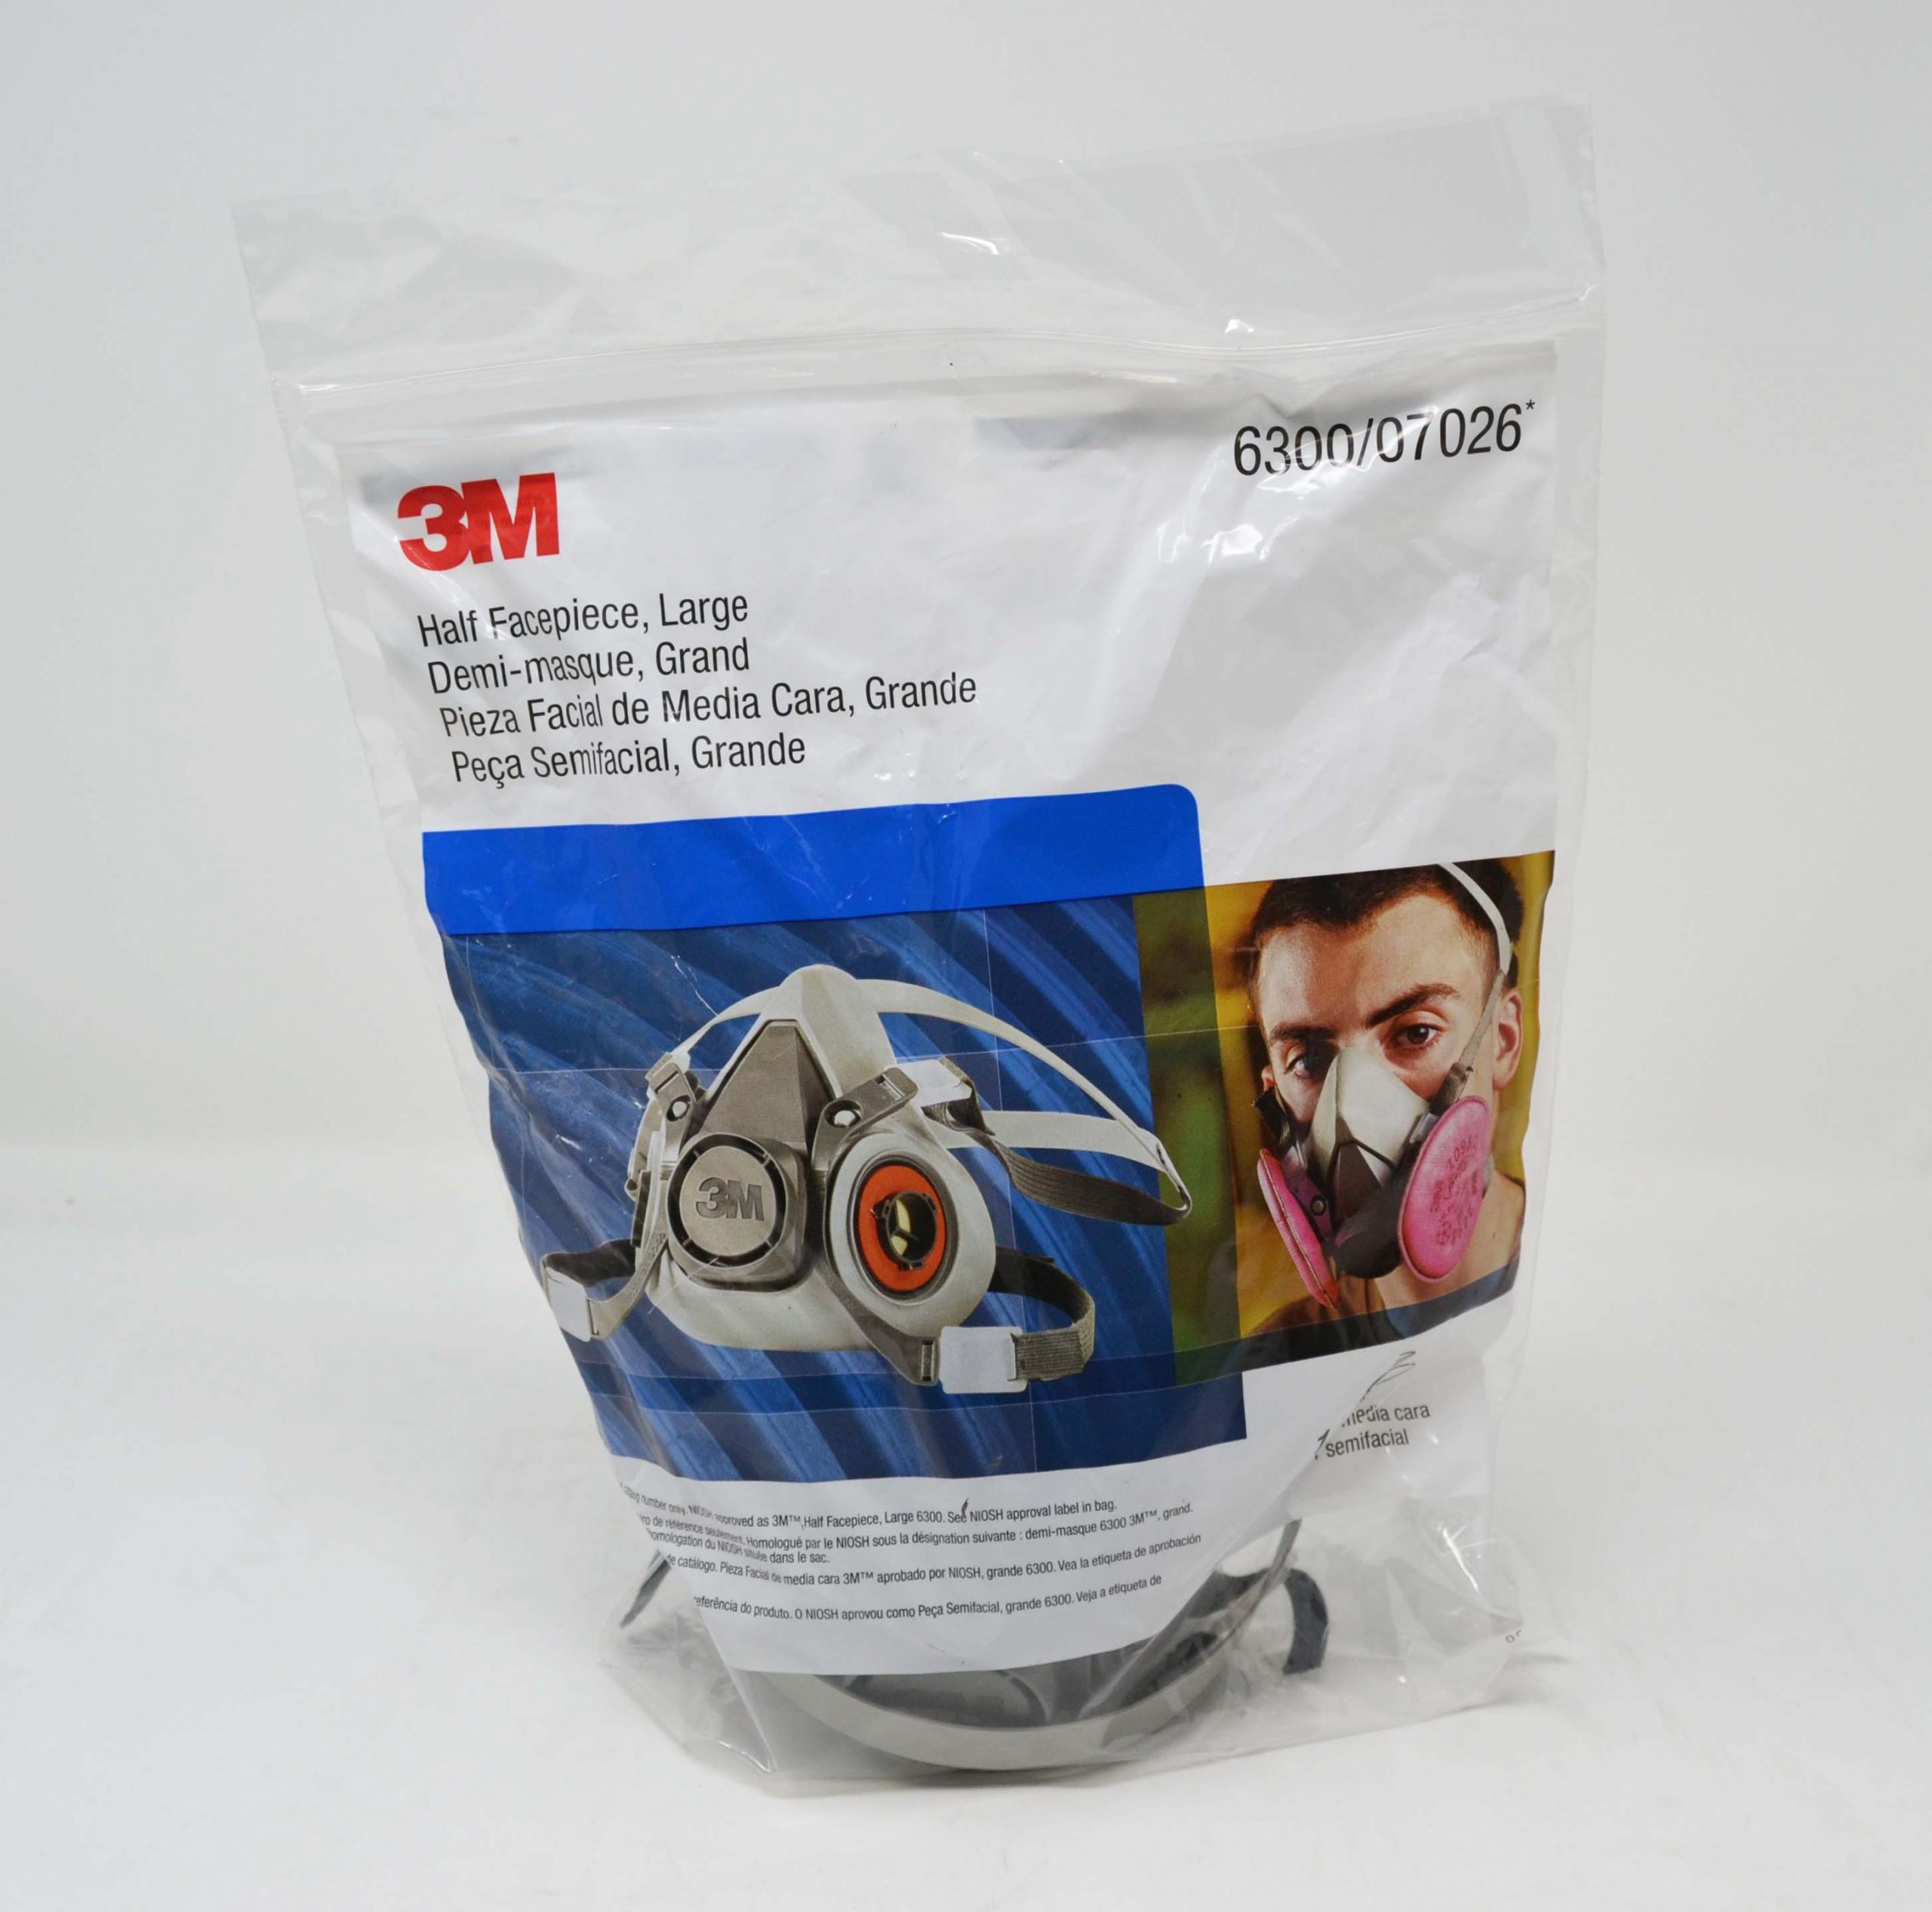 3m half face piece respirator large mask model 6300/07026